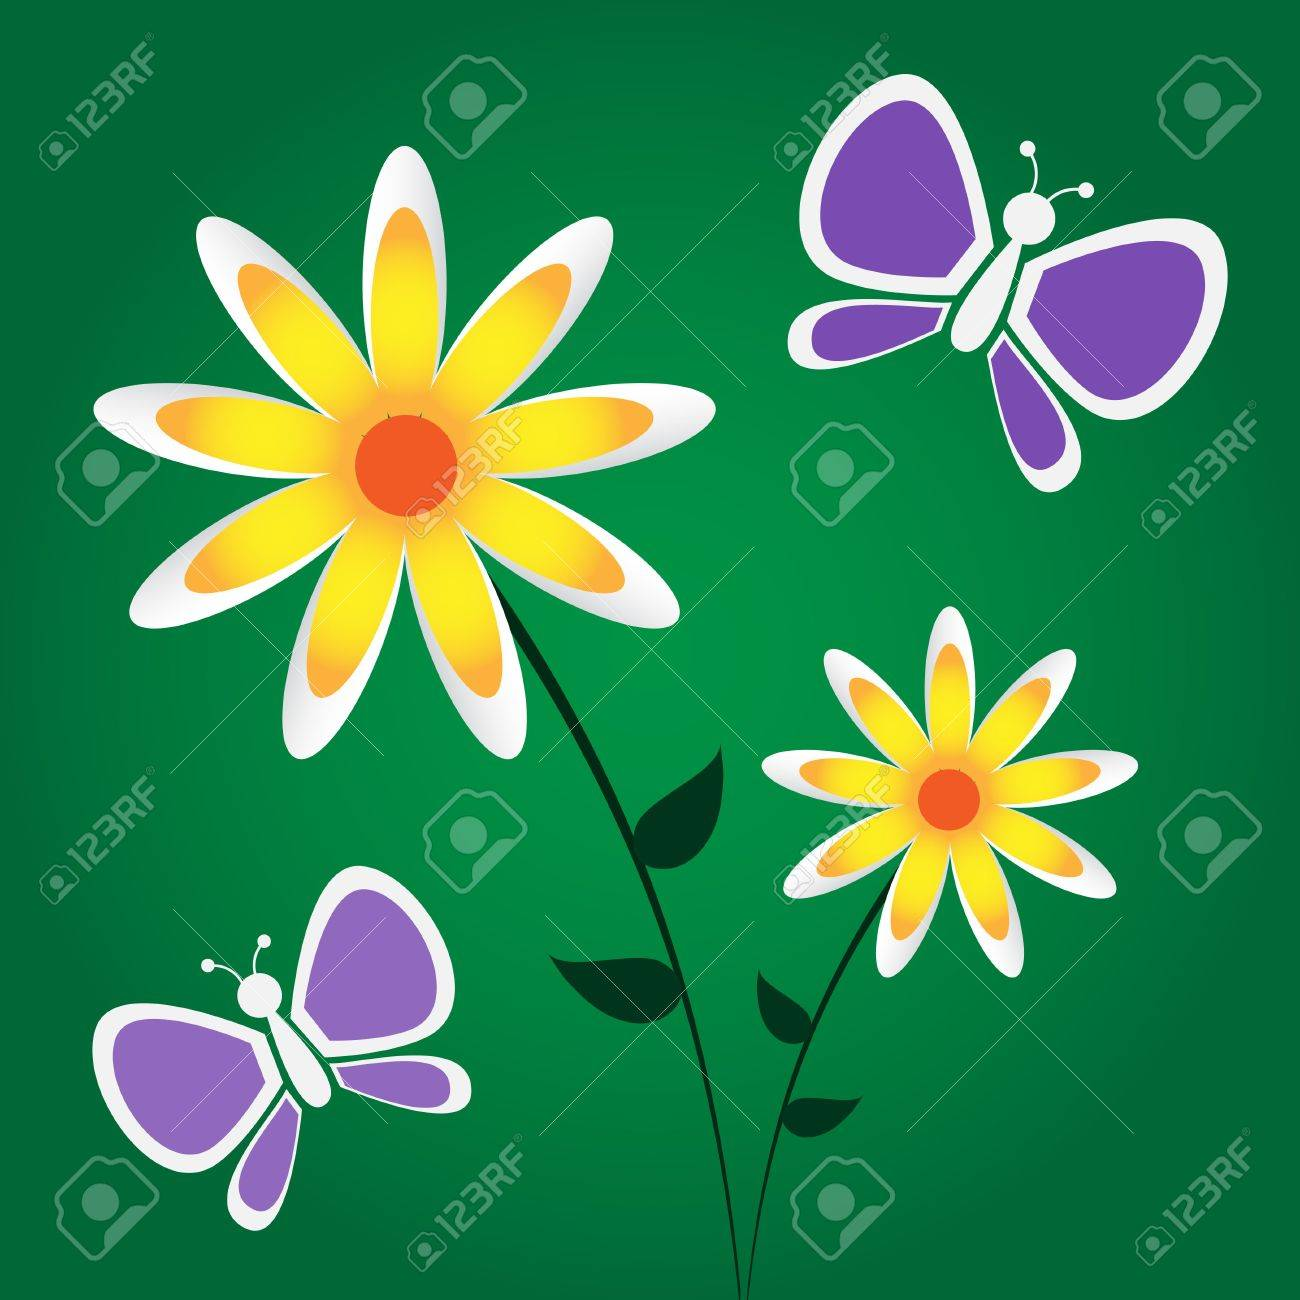 Graphic illustration of yellow and white flowers and purple graphic illustration of yellow and white flowers and purple butterflies against a dark green gradient background mightylinksfo